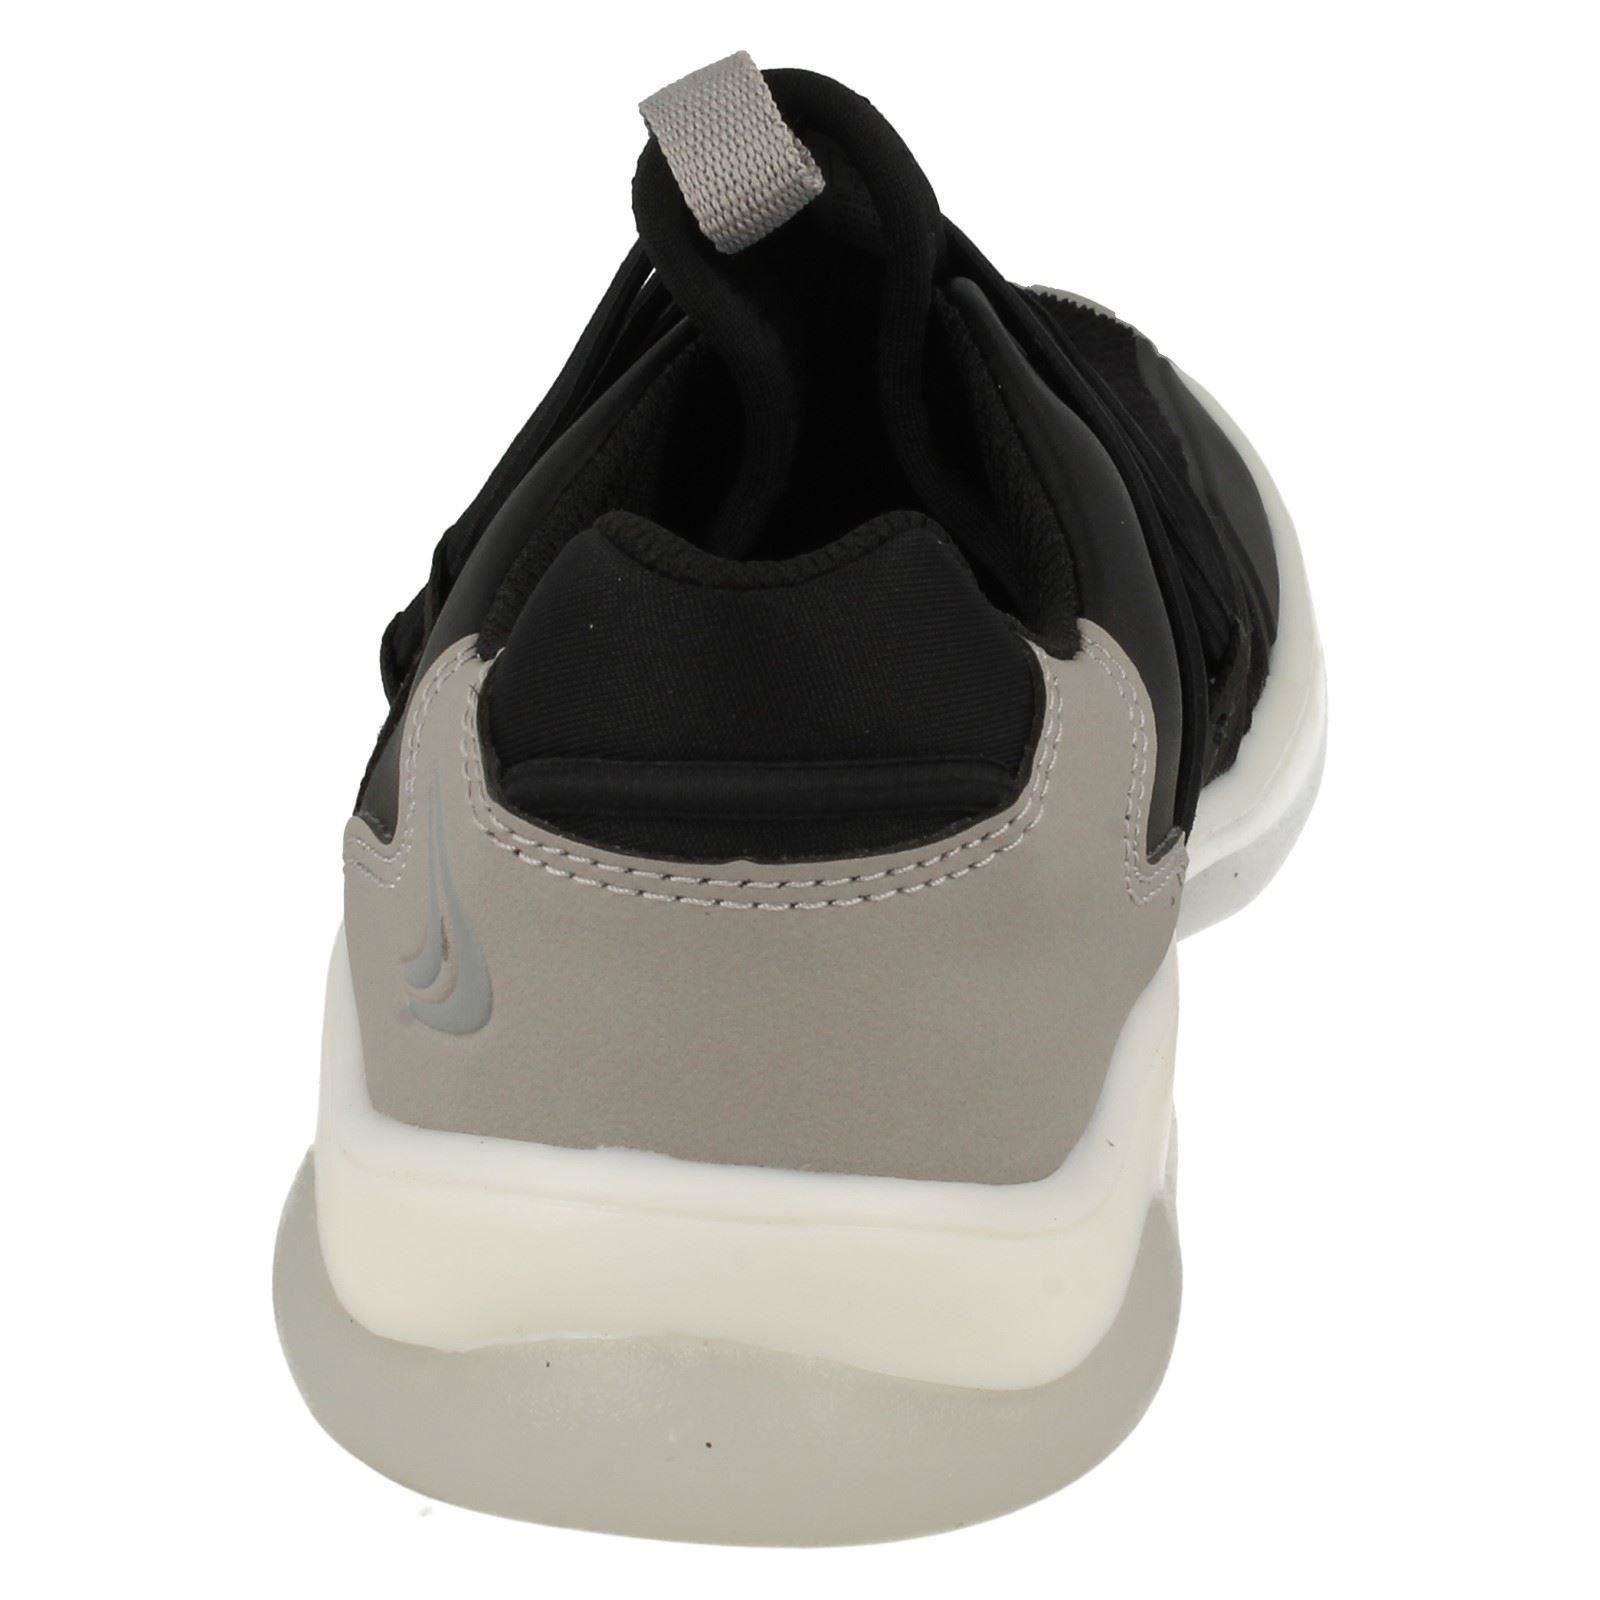 Boys Clarks Fashionable Slip On Trainers Buzzed Fire